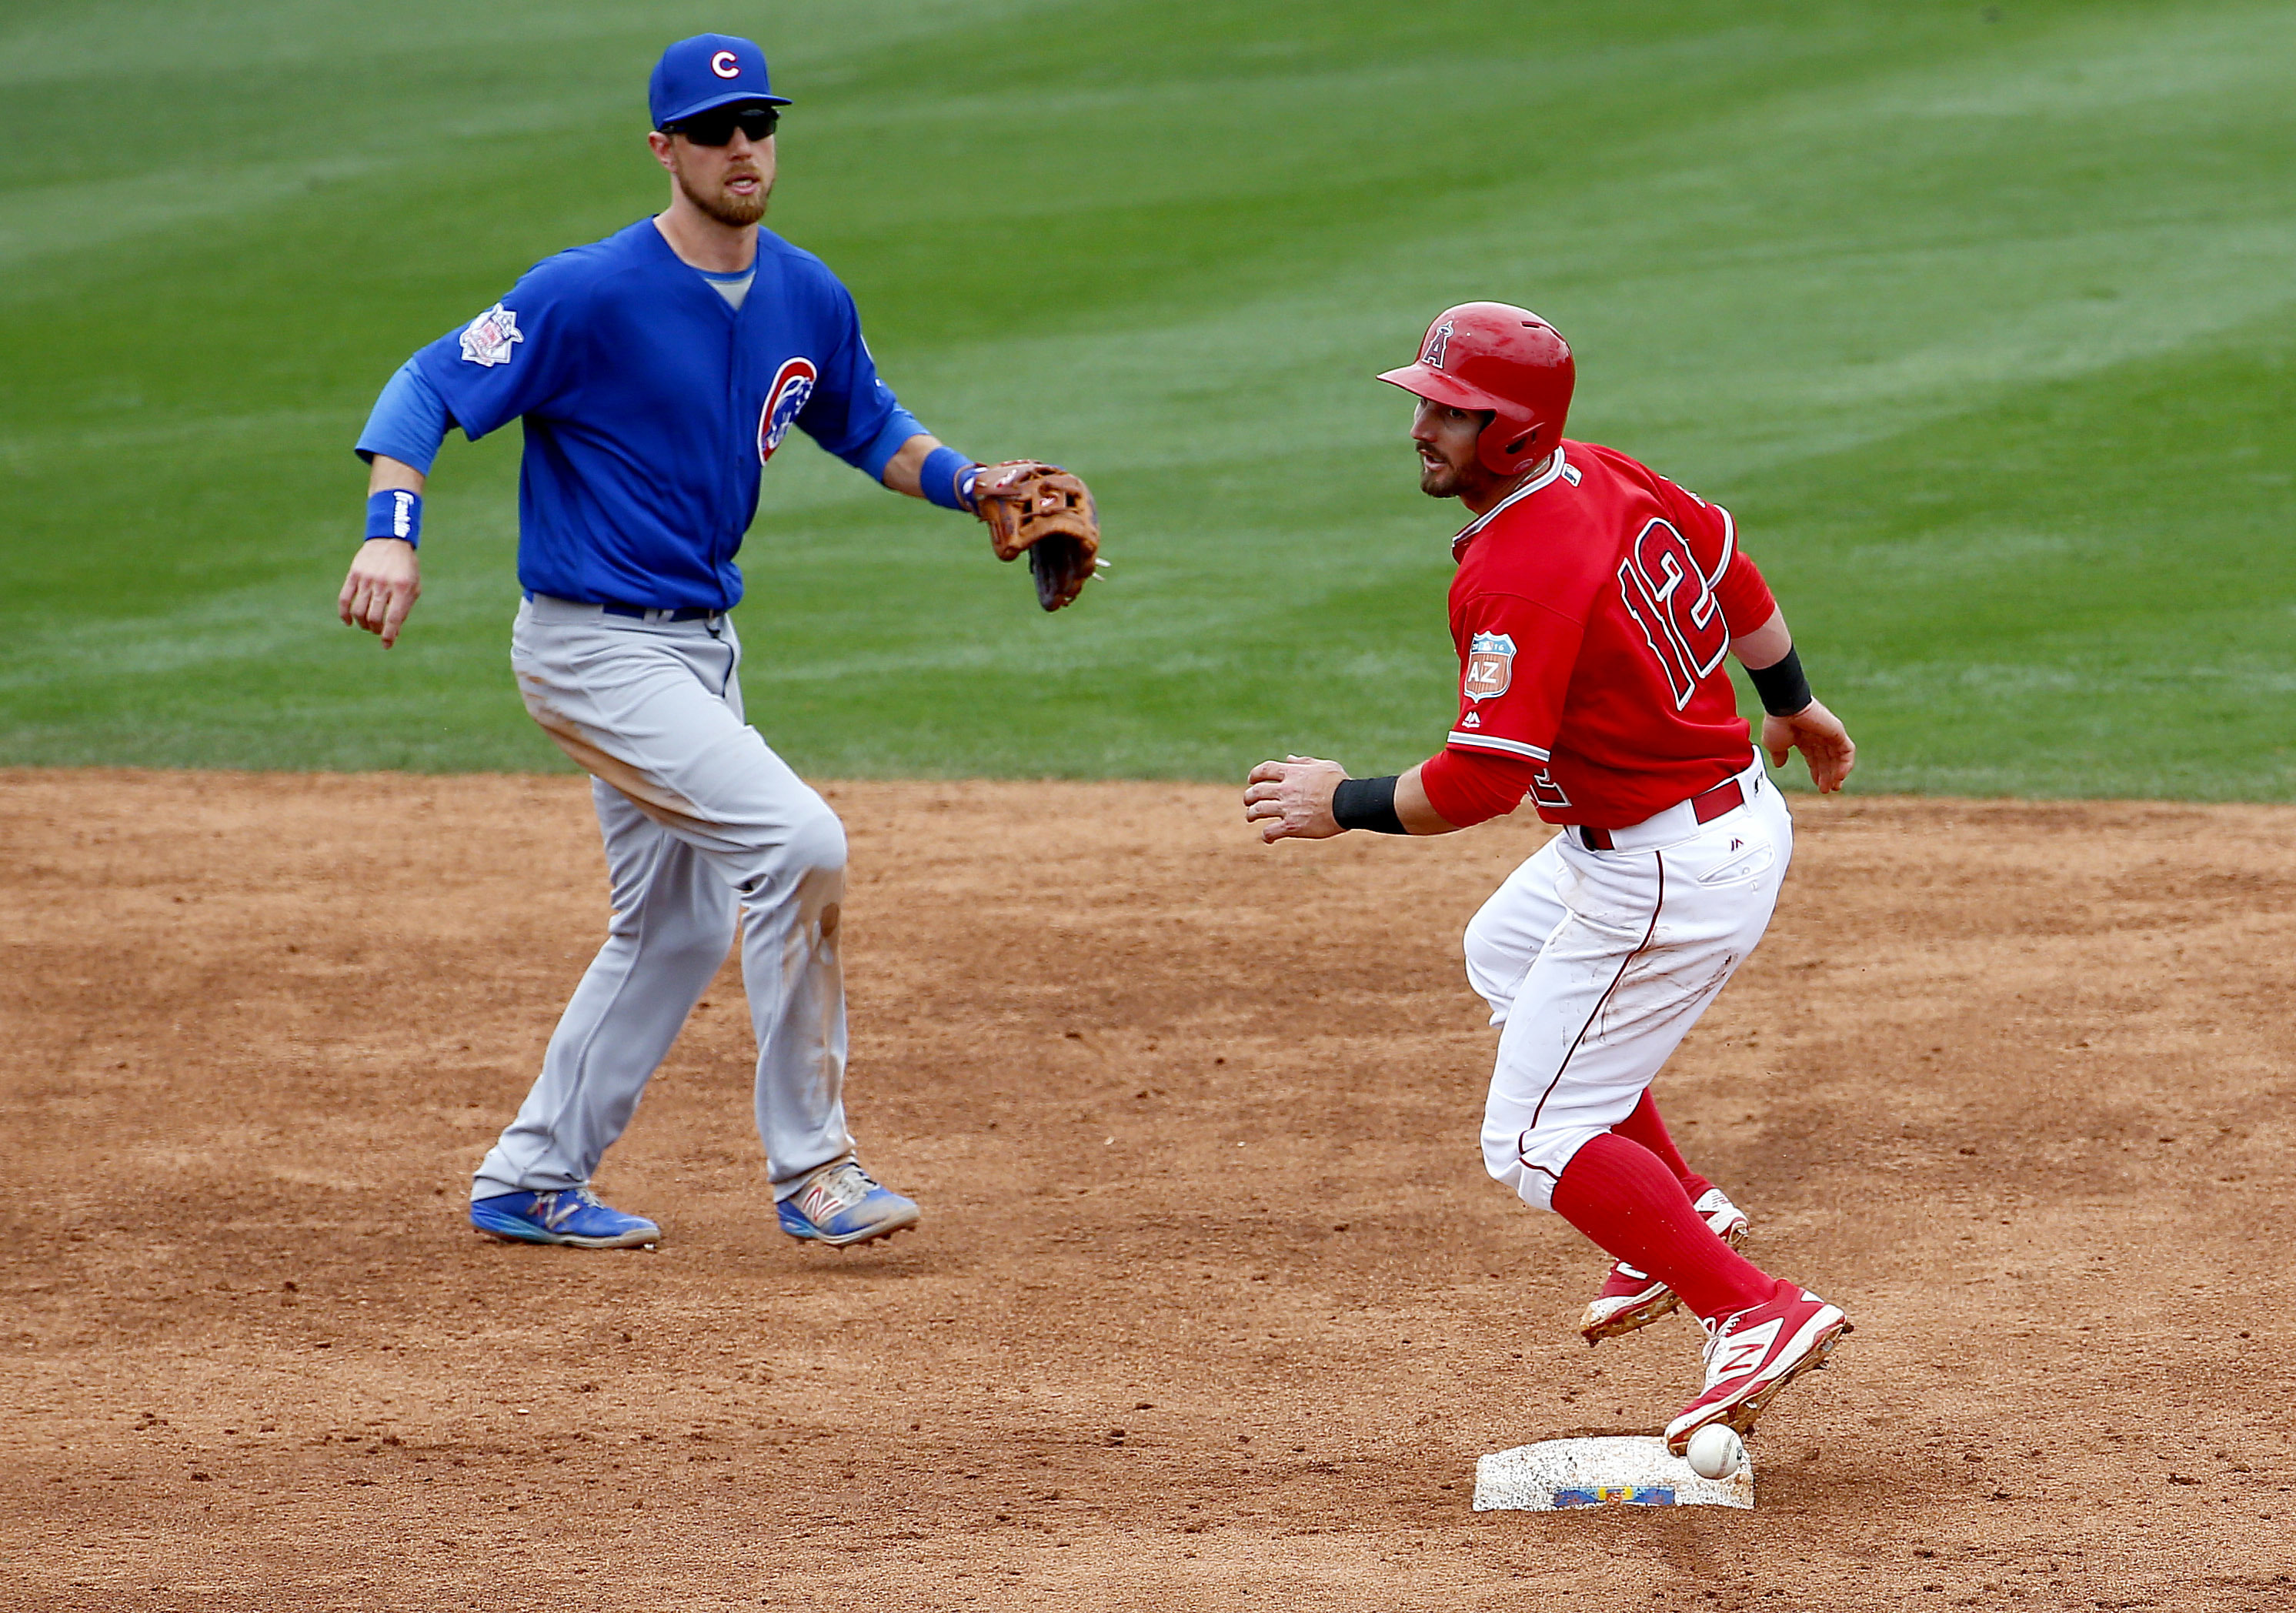 Los Angeles Angels' Johnny Giavotella (12) is out after running into a ground ball as Chicago Cubs' Ben Zobrist looks on during the third inning of a spring training baseball game, Monday, March 28, 2016, in Tempe, Ariz. (AP Photo/Matt York)